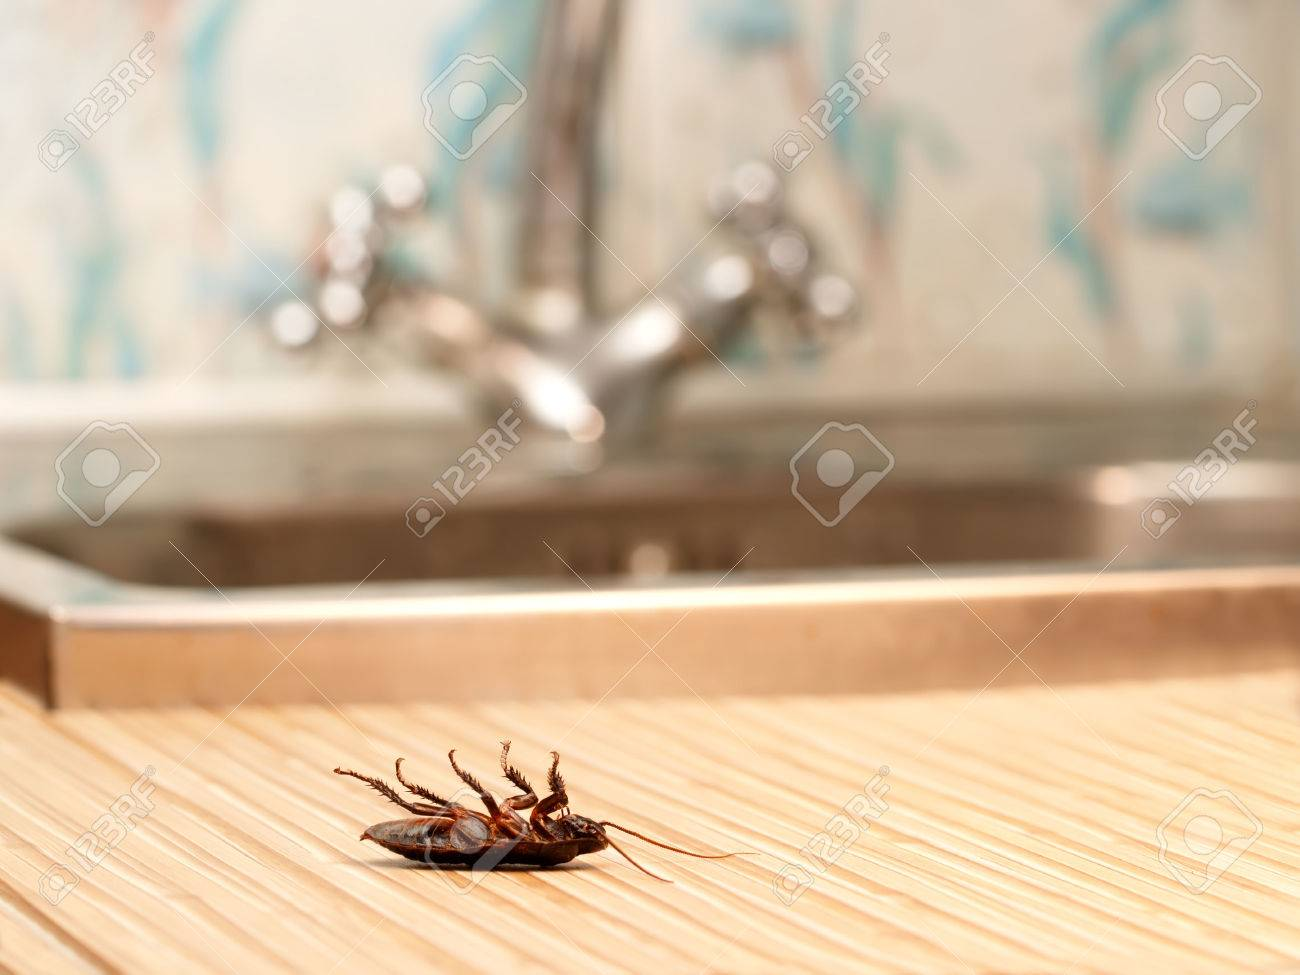 Dead cockroaches in an apartment house on the background of the water faucet. Inside high-rise buildings. Fight with cockroaches in the apartment. Extermination. Standard-Bild - 56169539